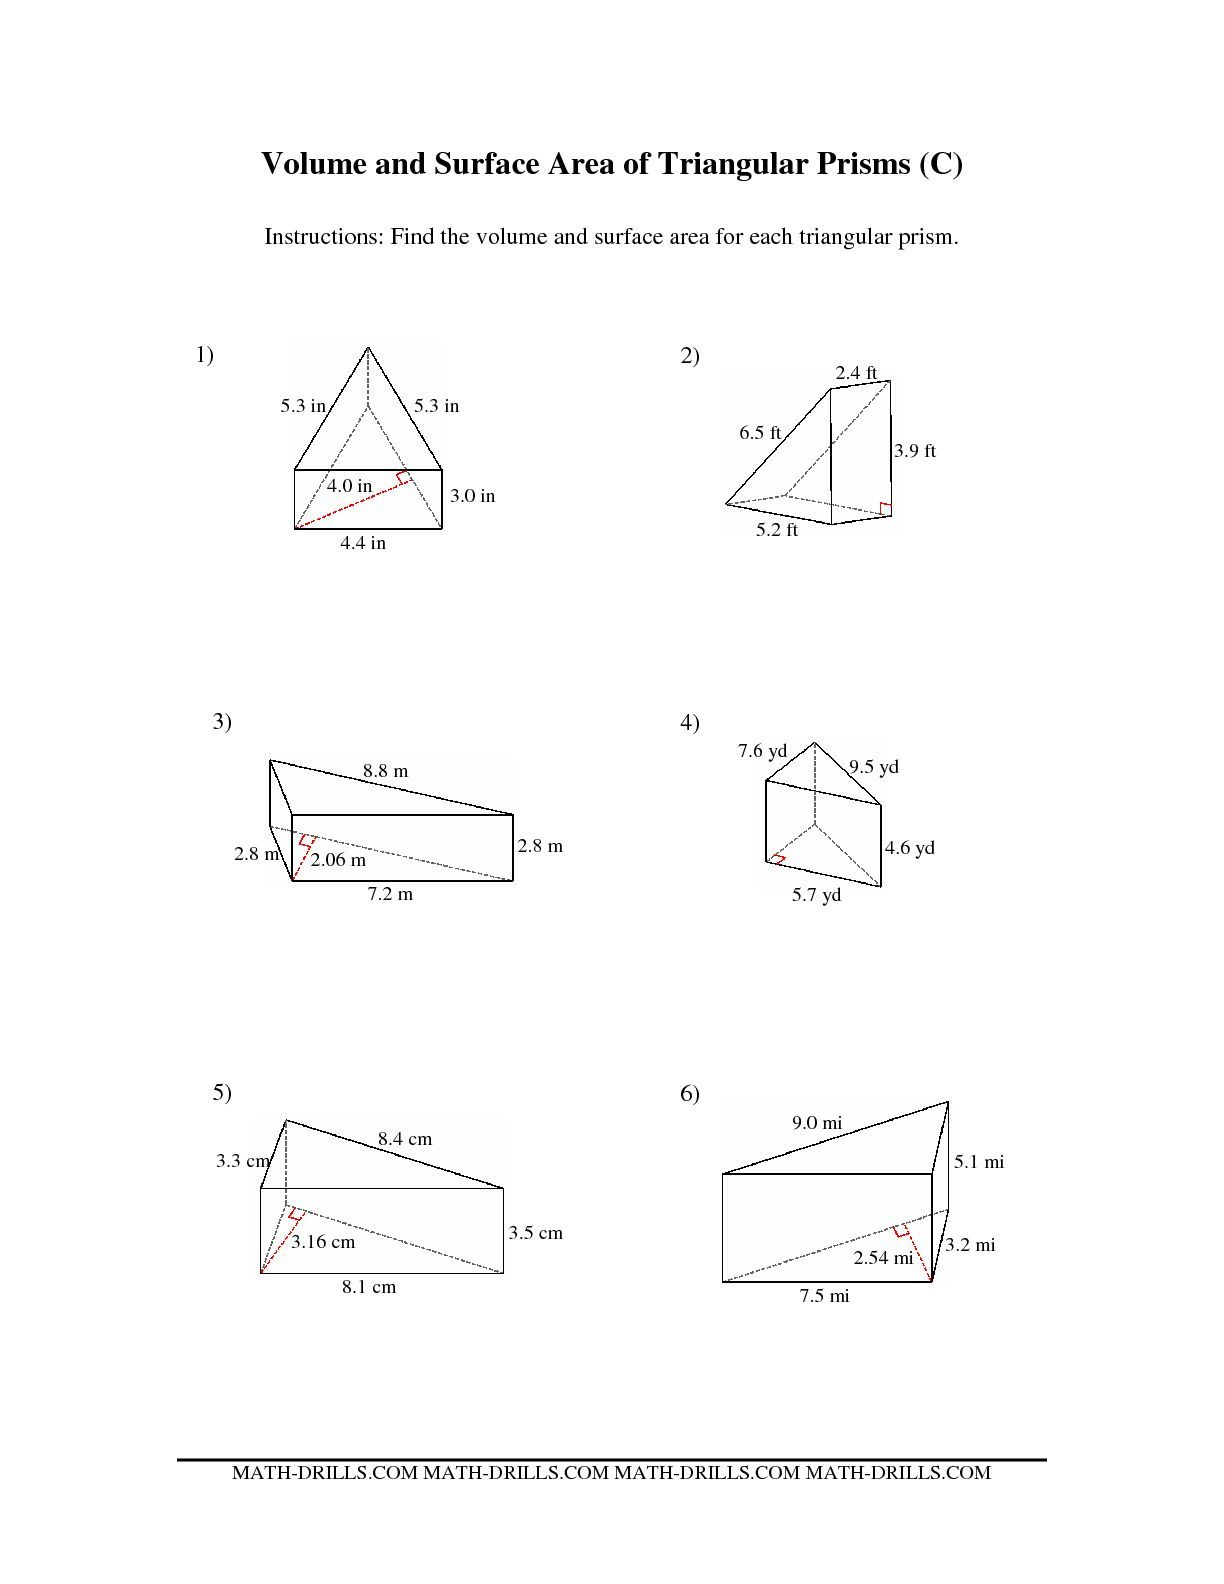 worksheet Surface Area Of Rectangular Prism Worksheet Answers the volume and surface area of triangular prisms c math worksheet from measurement